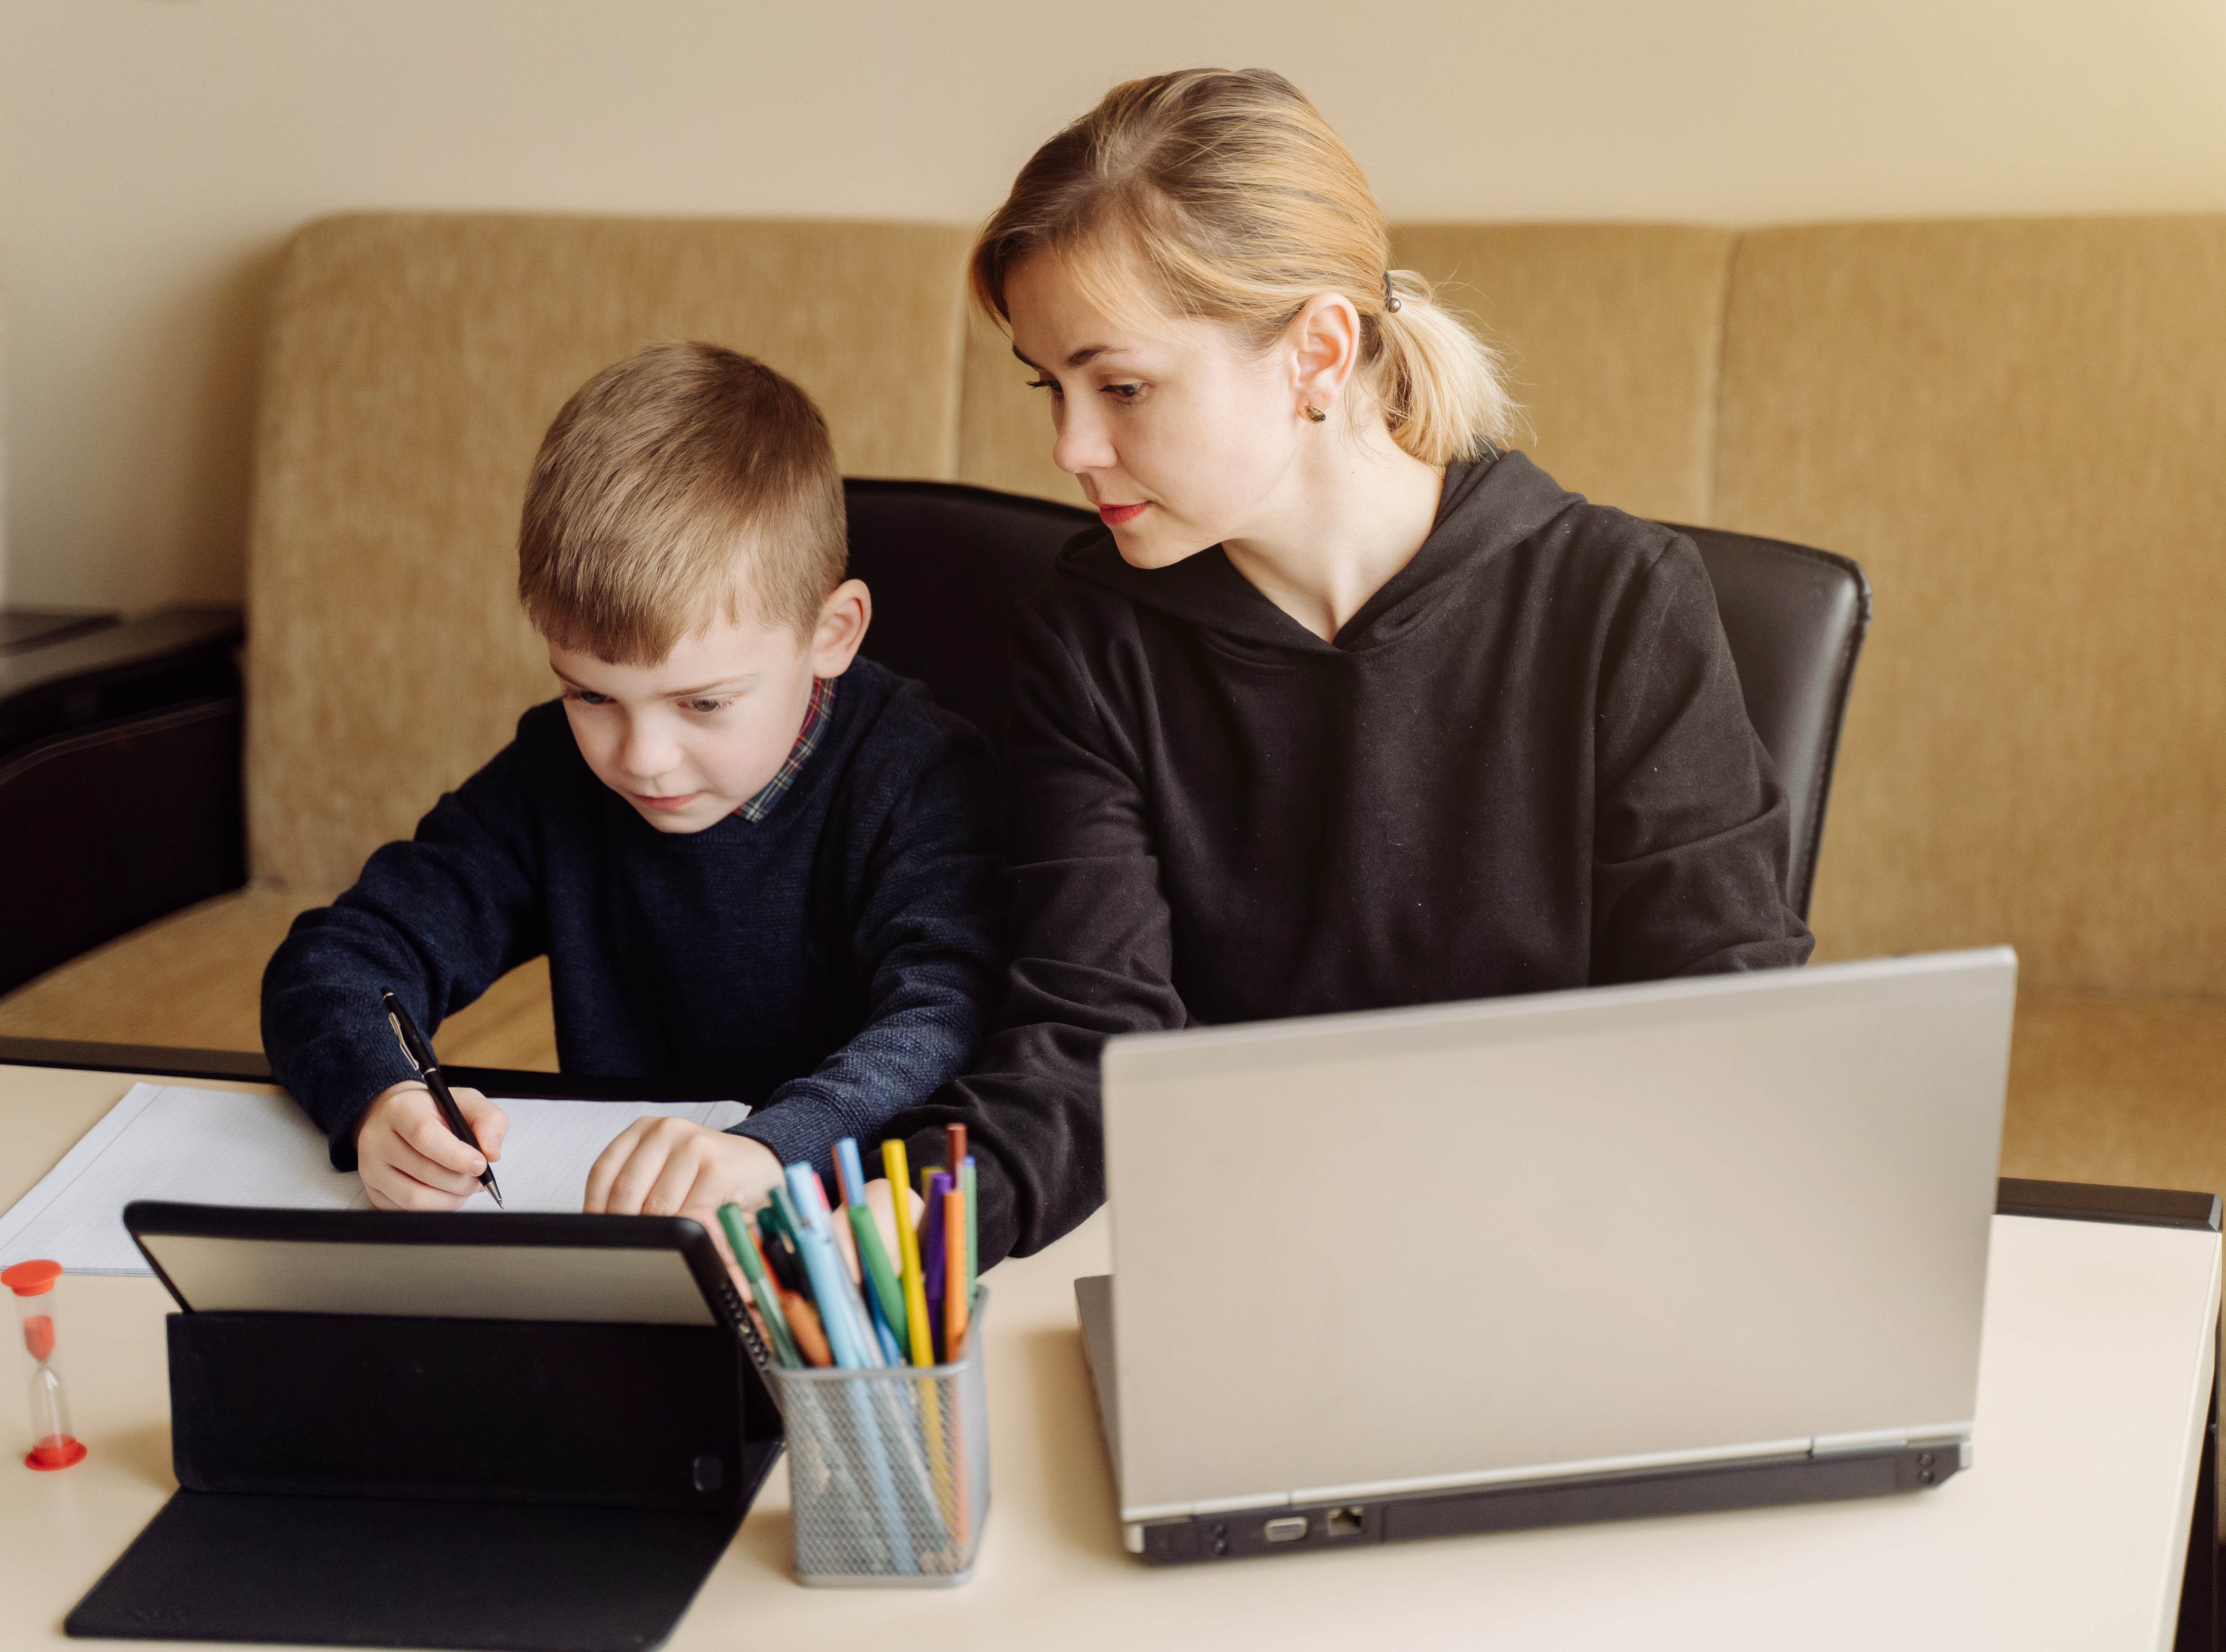 Mother using laptop and tablet teaching with her son online at home in his room